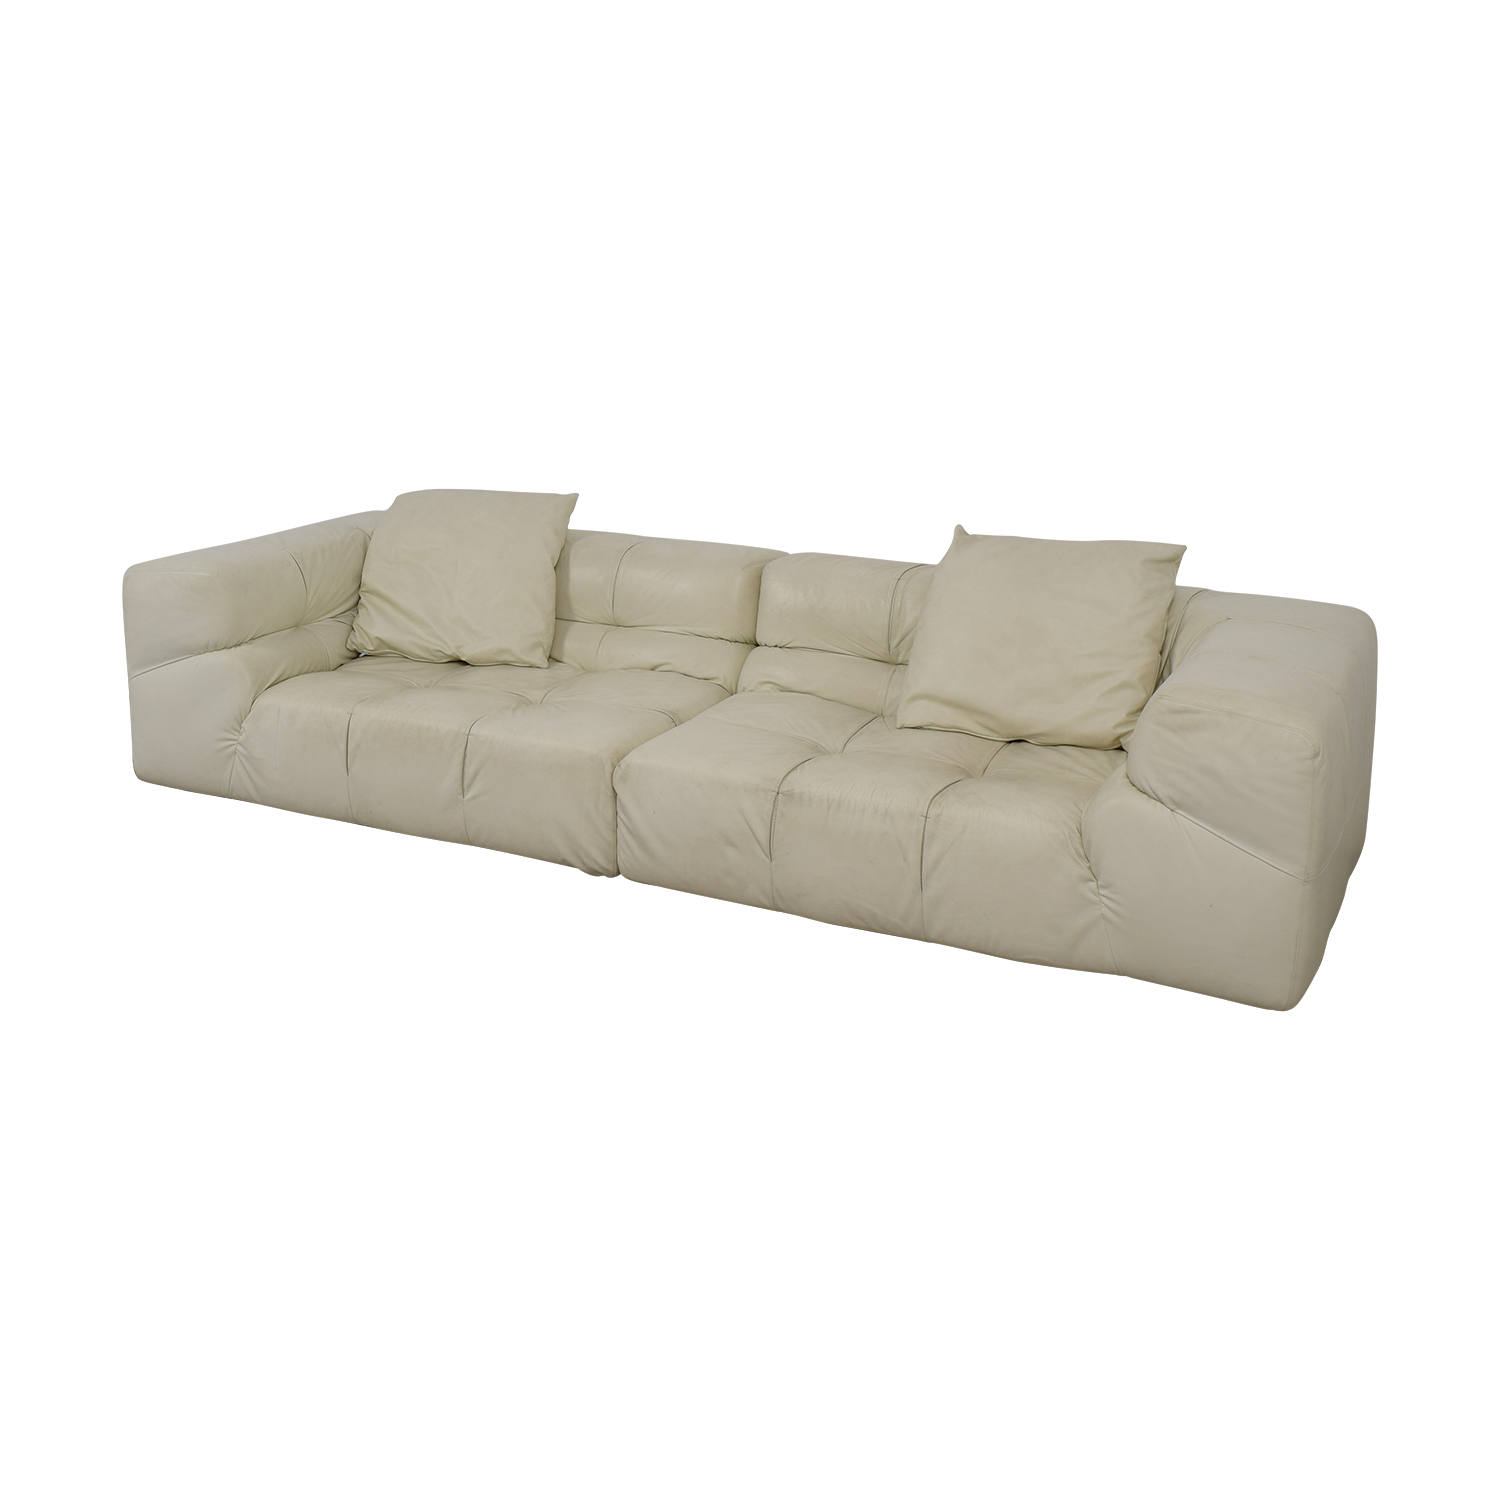 white tufted leather sofa sectional sofas okc 52 off ligne roset couch discount